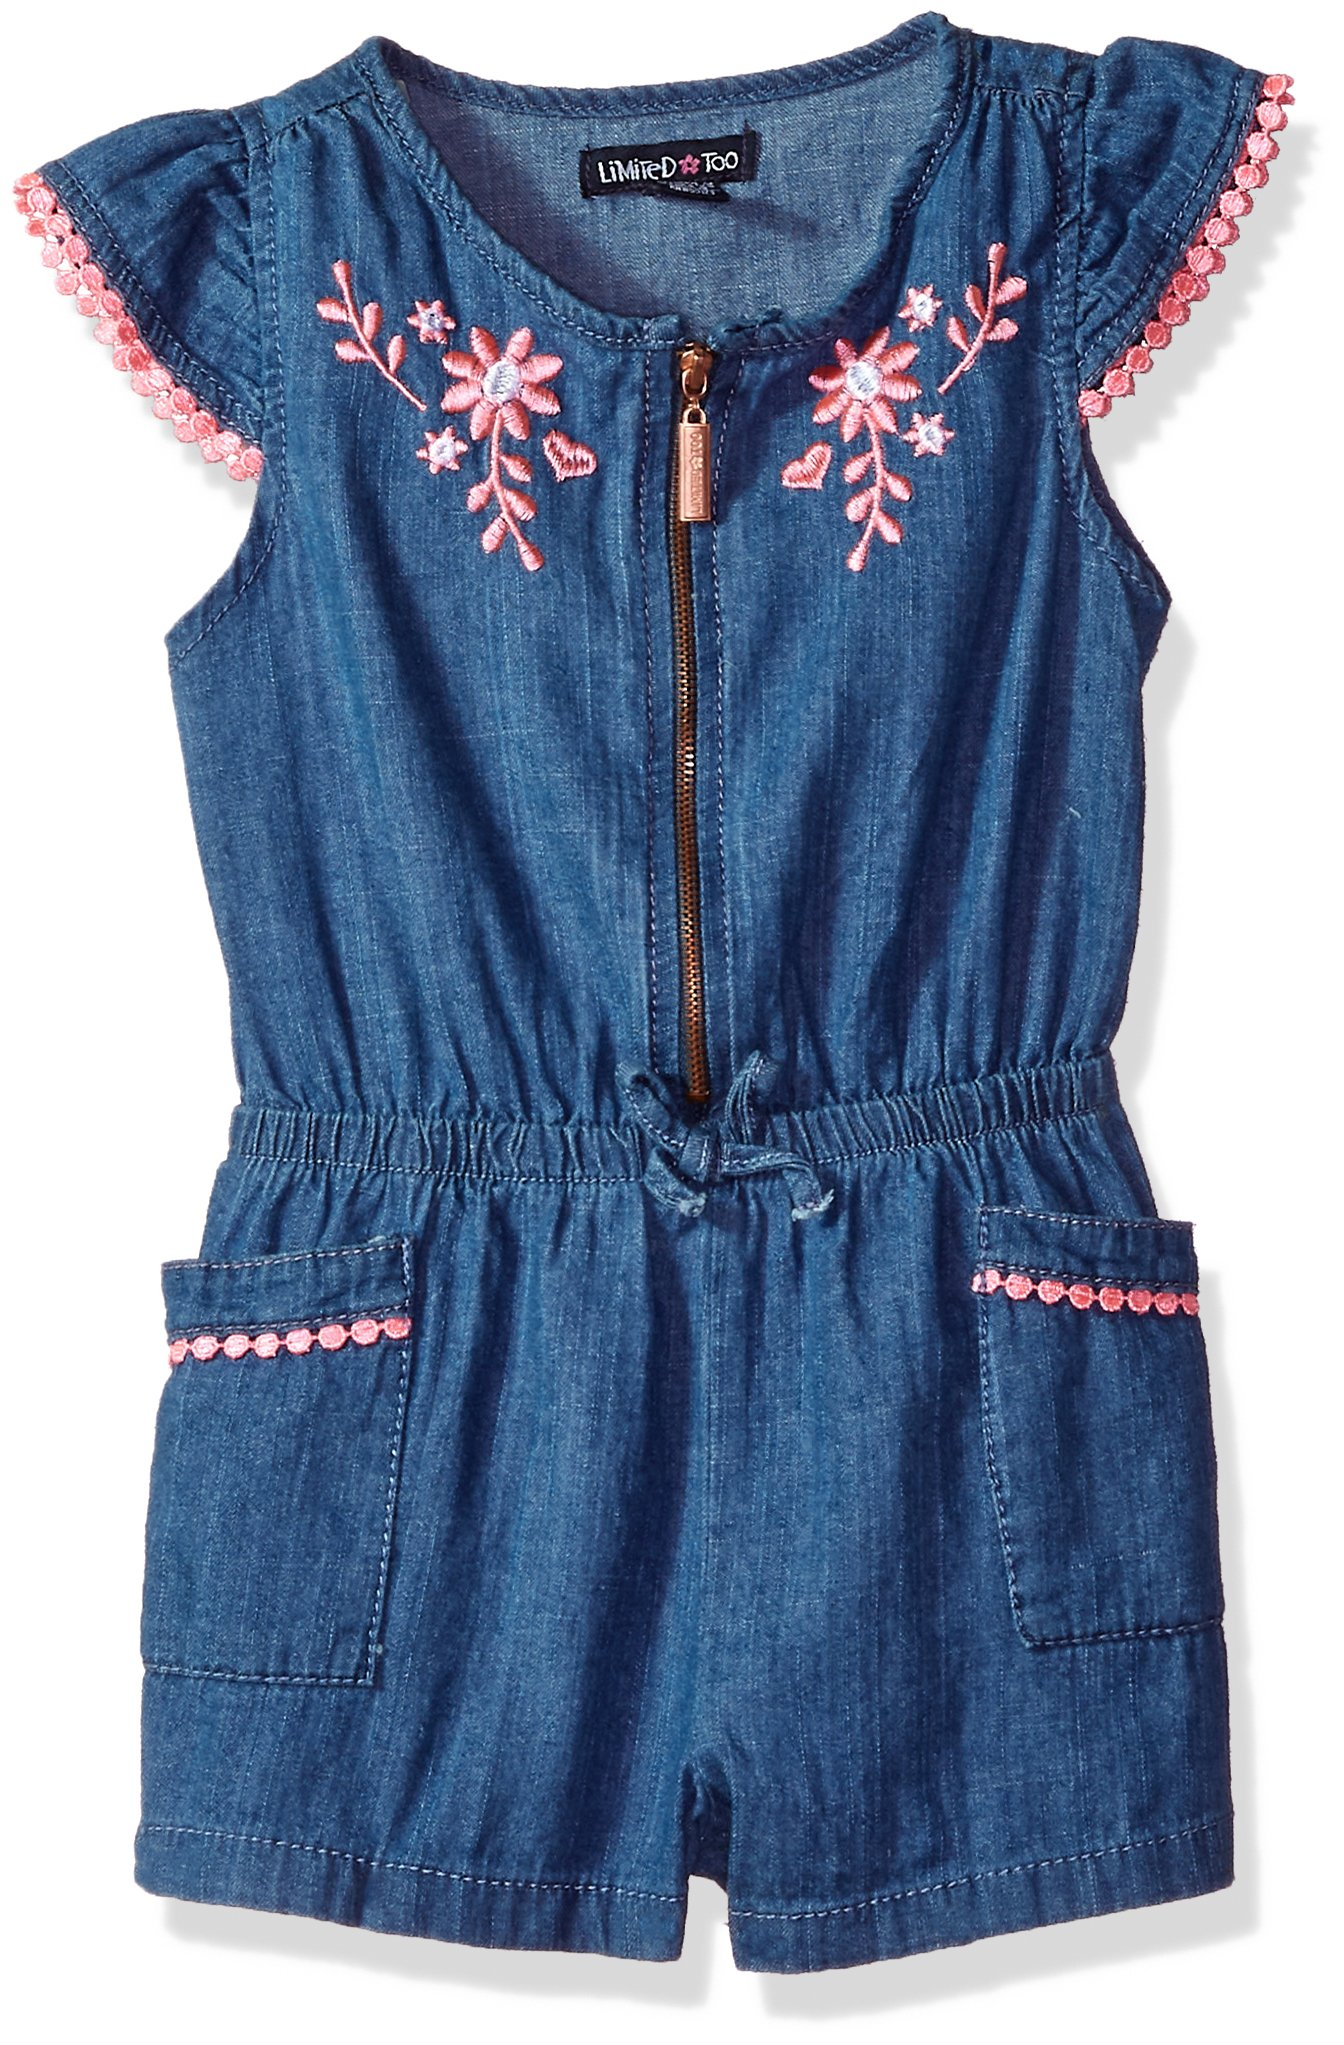 Limited Too Toddler Girls' Romper, Flower Cross Hatch Denim Medium Blue Wash, 2T